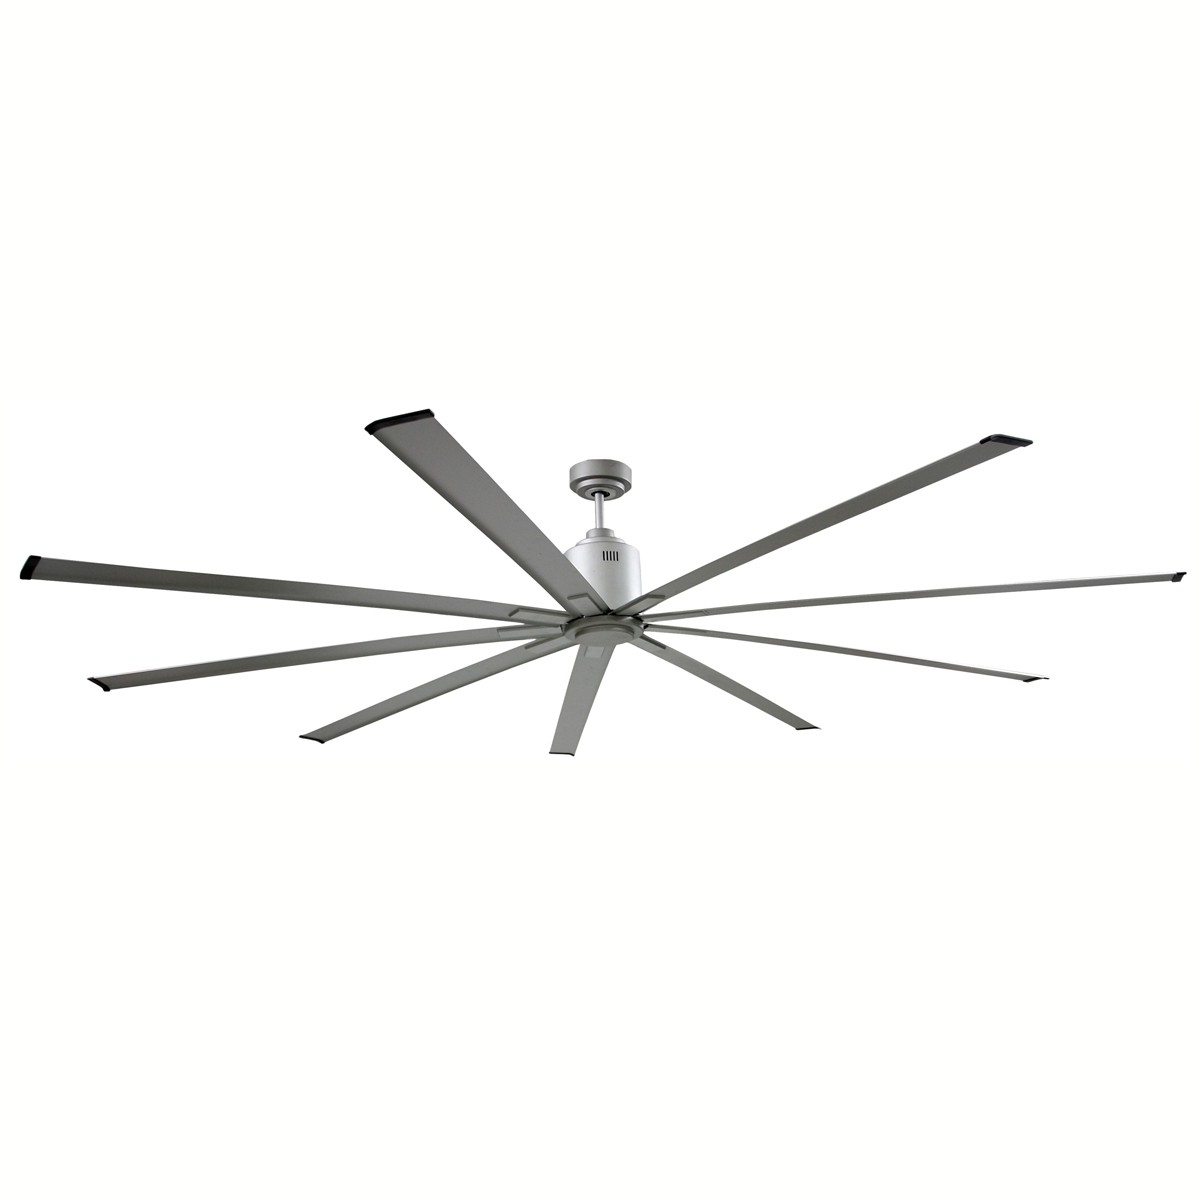 Preferred 72 Inch Outdoor Ceiling Fans Throughout 72 Inch Indoor Industrial Ceiling Fan (View 15 of 20)